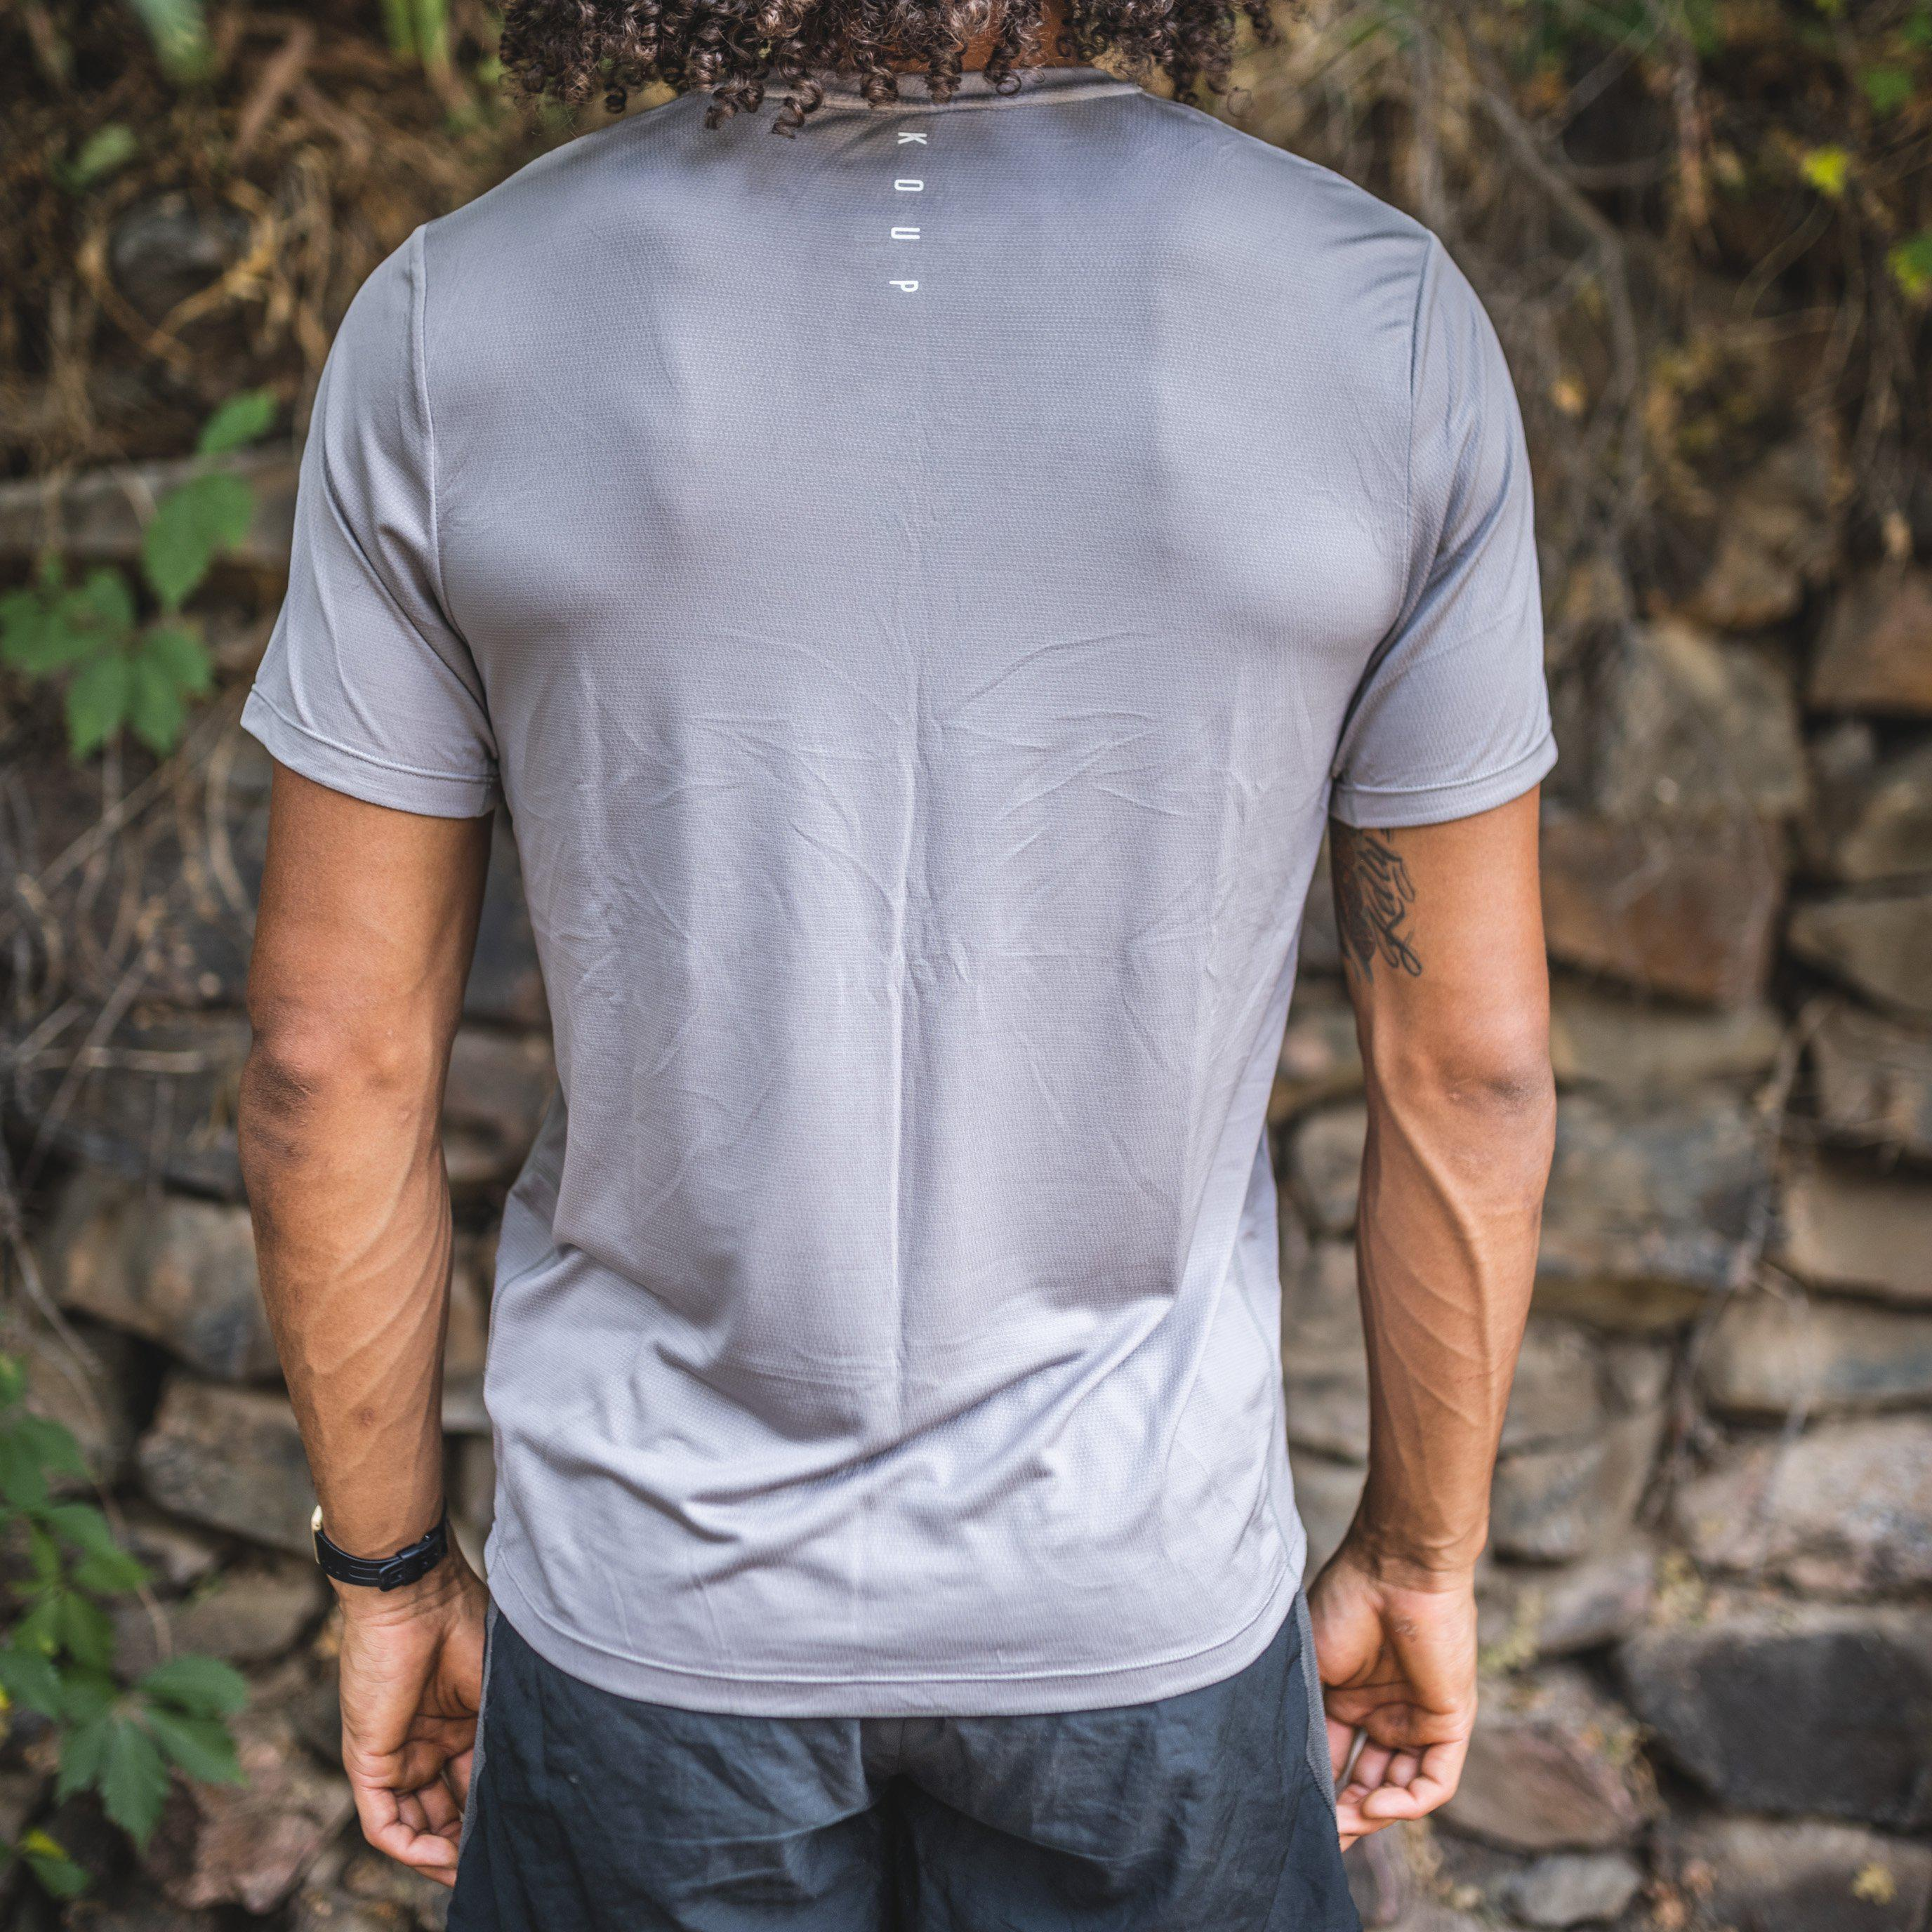 Men's short-sleeves performance t-shirt grey back